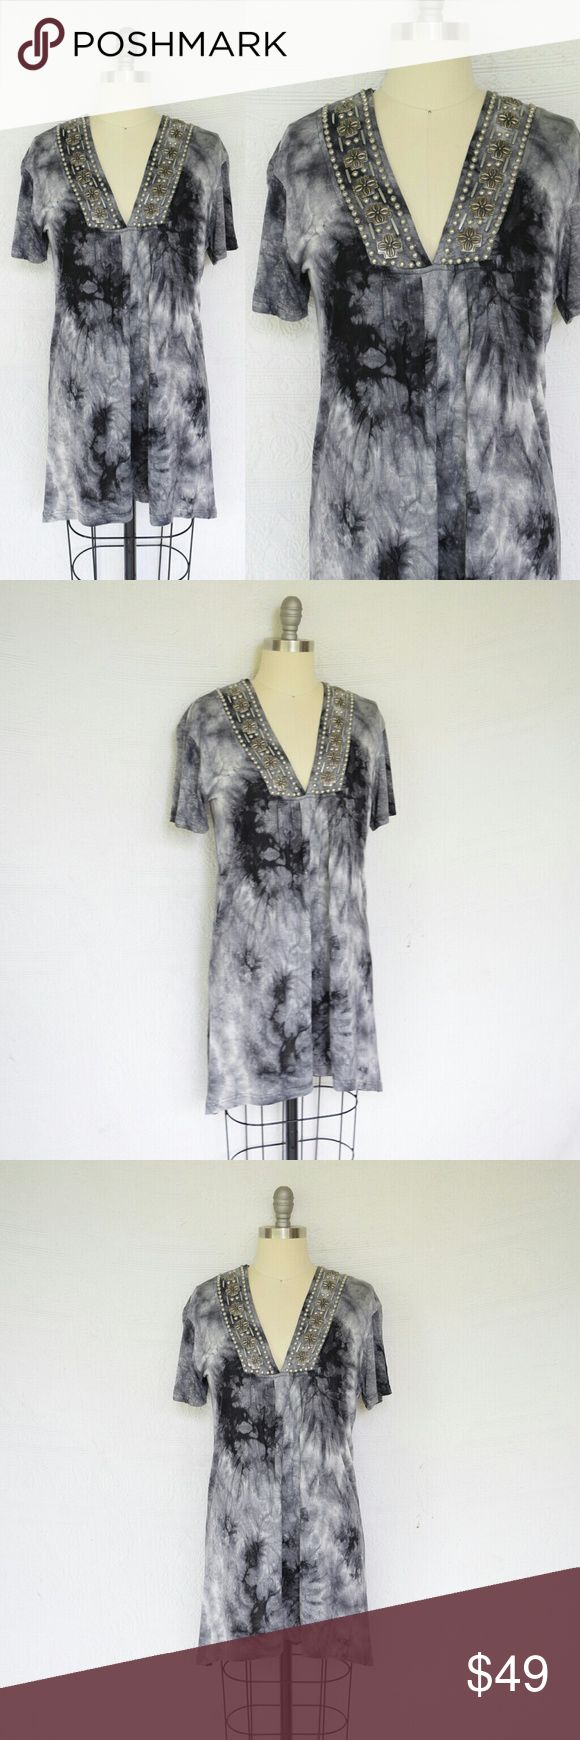 Double D Ranch Sangre de Cristo tee tunic blouse Super cool Double D Ranch Sangre de Cristo tee in get a little twisted. Awesome tie dye pattern in Greys & Black. Beautiful Concho like beading and studs on the neckline. Longer tunic design. New with tags $150 double d ranch Tops Tunics